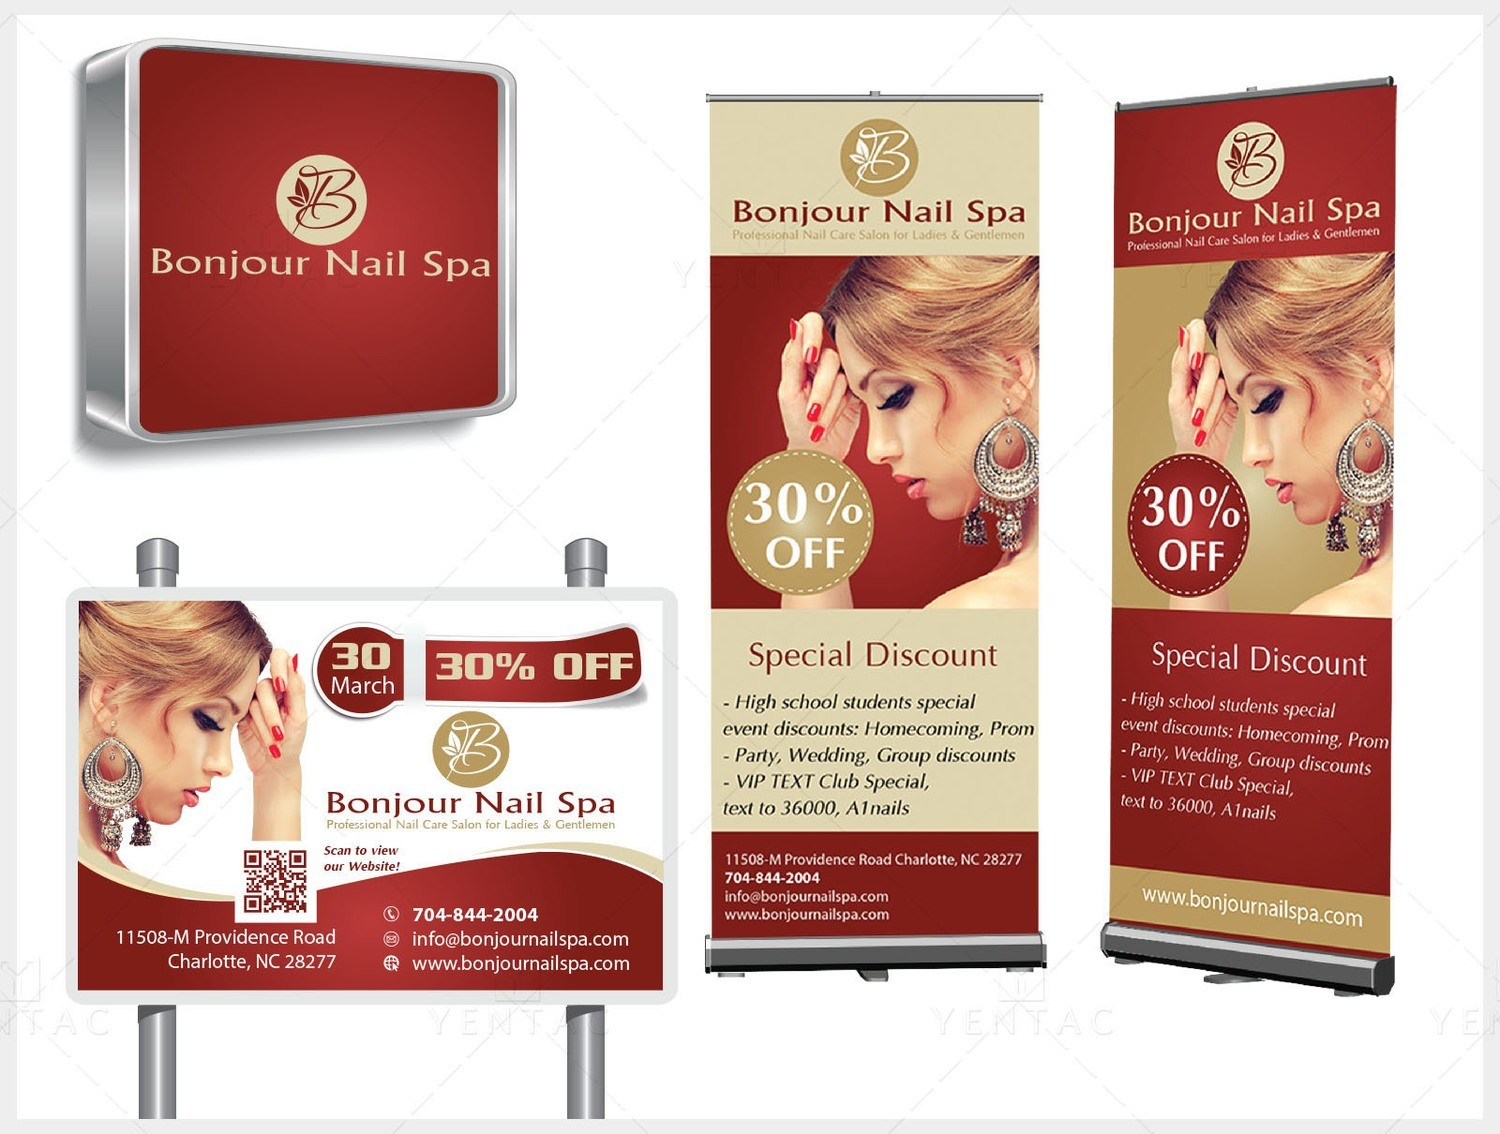 08 - Signage Solution - Bojour Nails Spa #5070 Salon